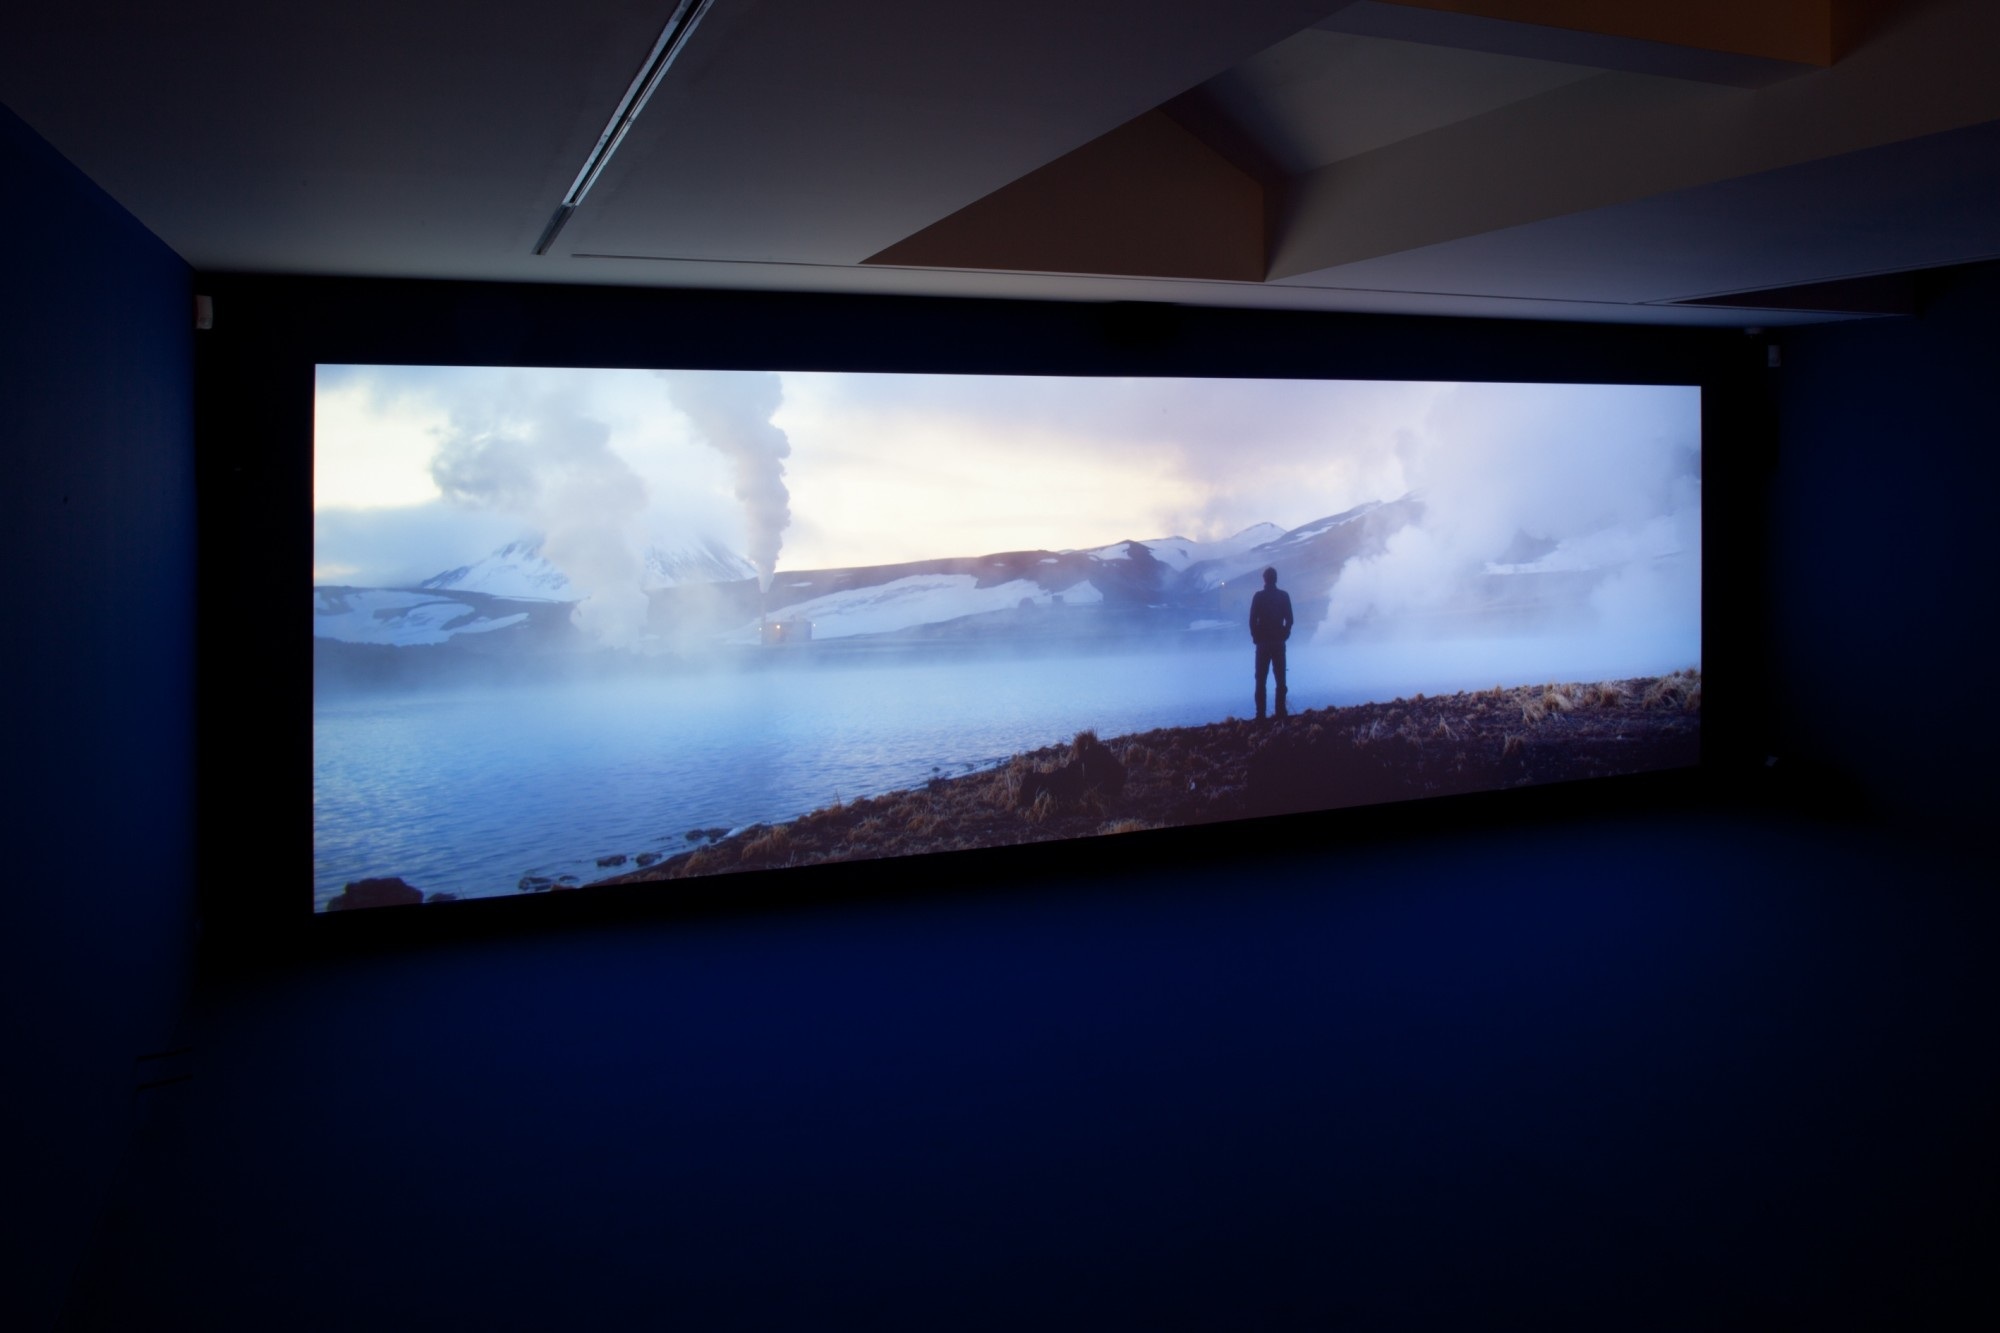 """Playtime. Galerie Ron Mandos, Amsterdam, 2014  Double projection, edge blended, single screen ultra high definition with 5.1 surround sound, 66'57"""""""